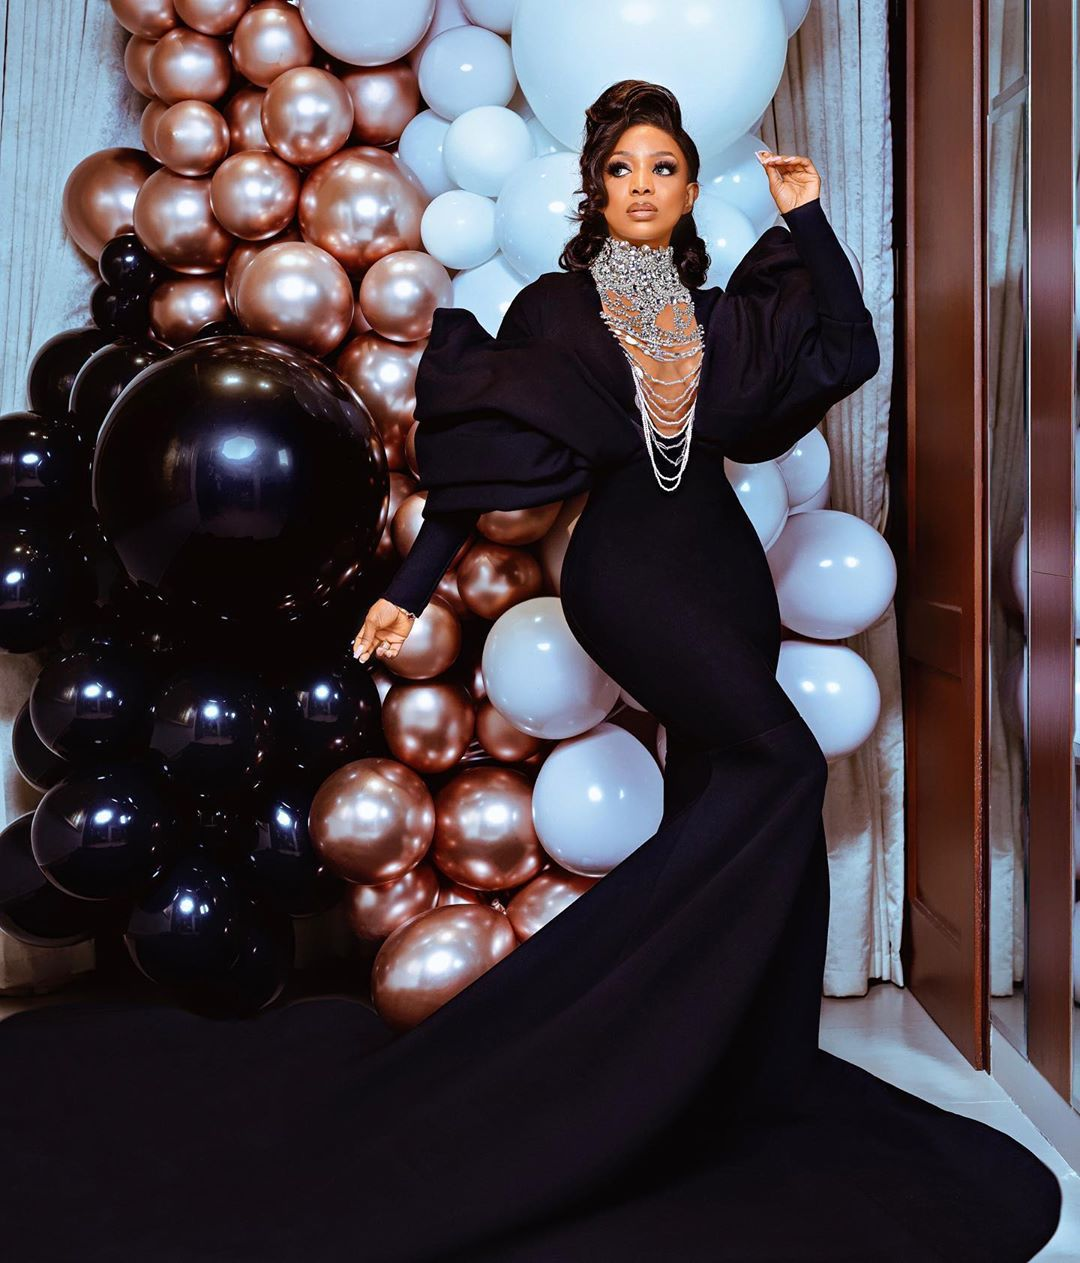 Chioma Ikokwu Just Raised The Bar On Glamorous Birthday Photo Shoots | BN Style